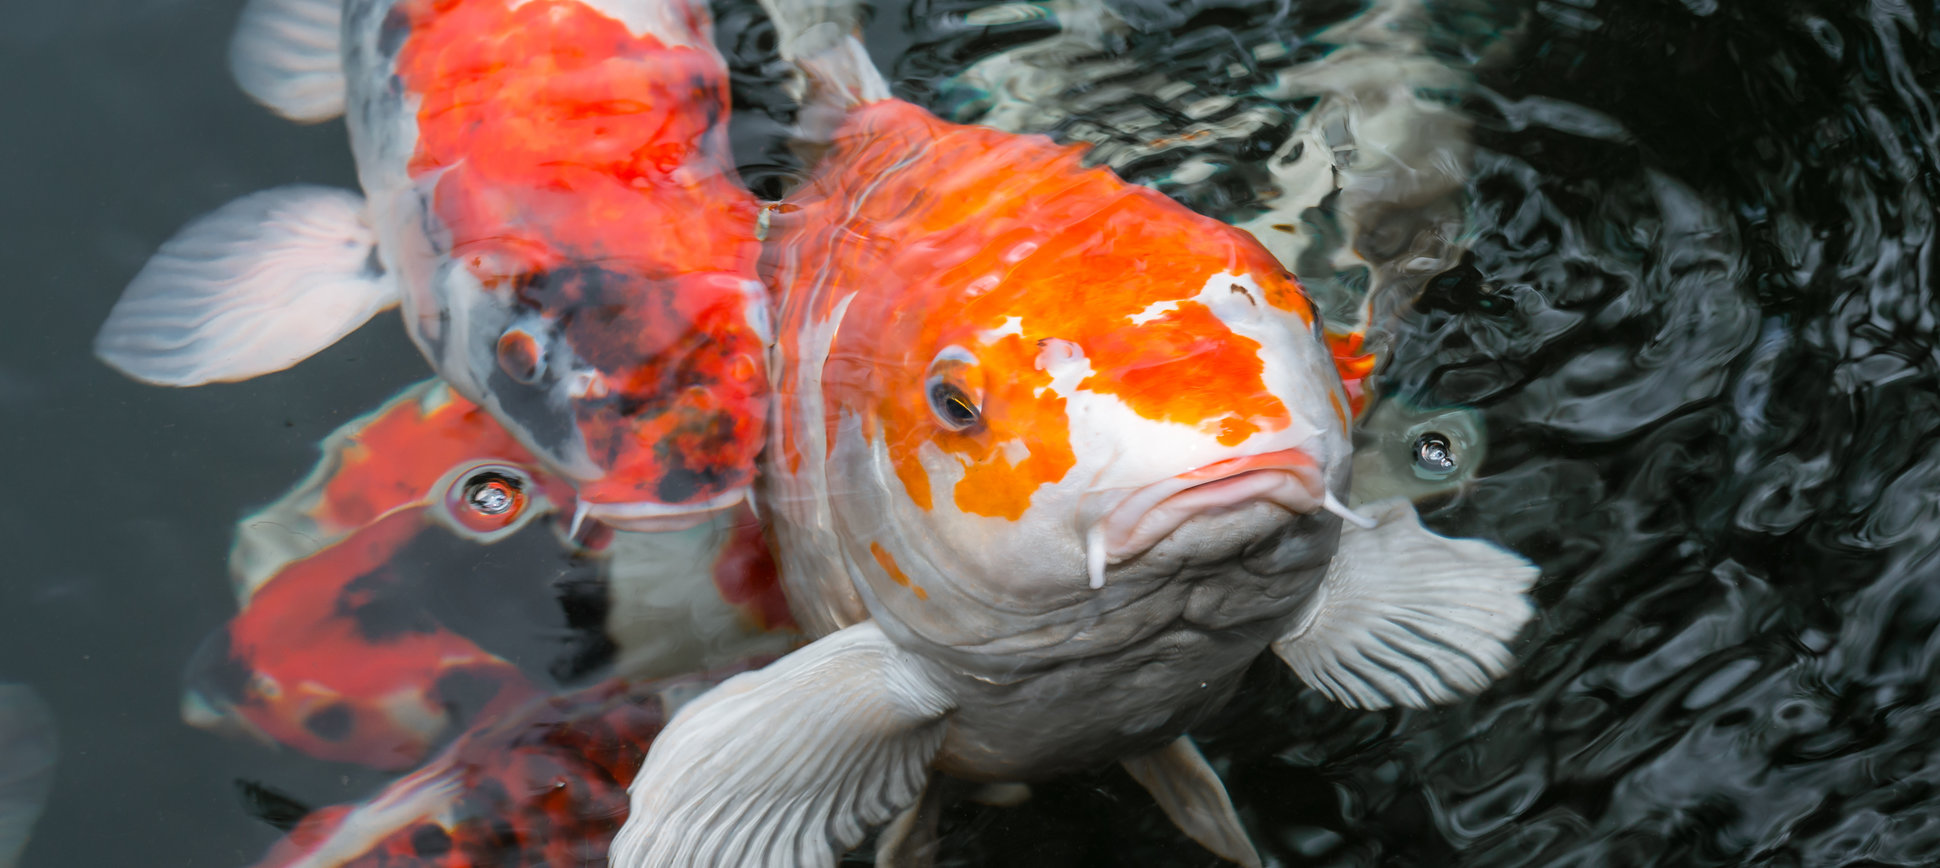 This Will Make You Think Twice About Eating Seafood